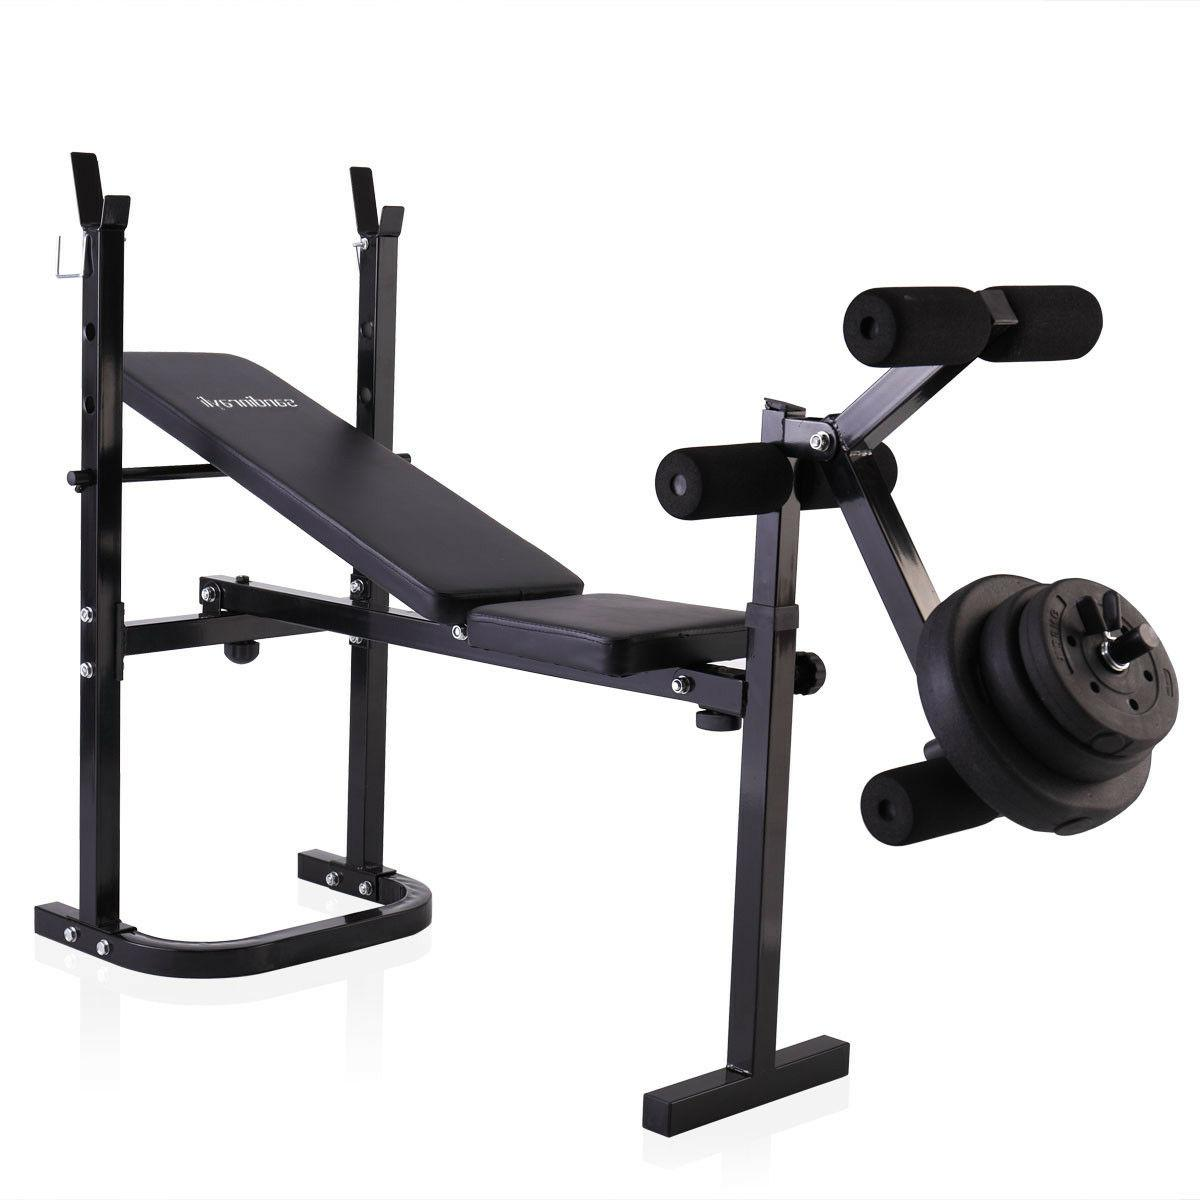 Weight Lifting Press Exercise Adjustable